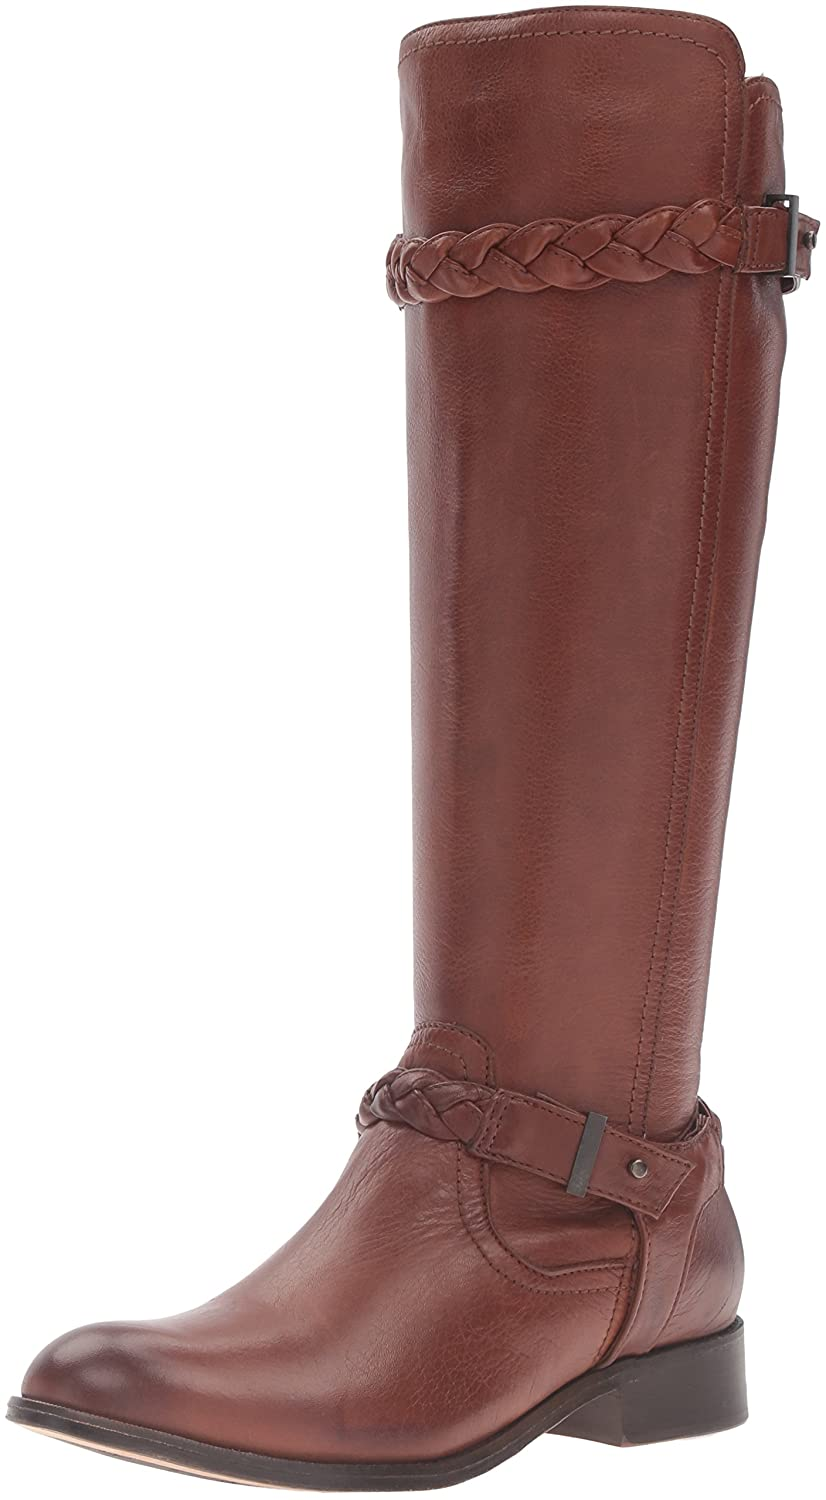 Johnston & Murphy Women's Laura Boot B01HYY927Q 6 B(M) US|Teak